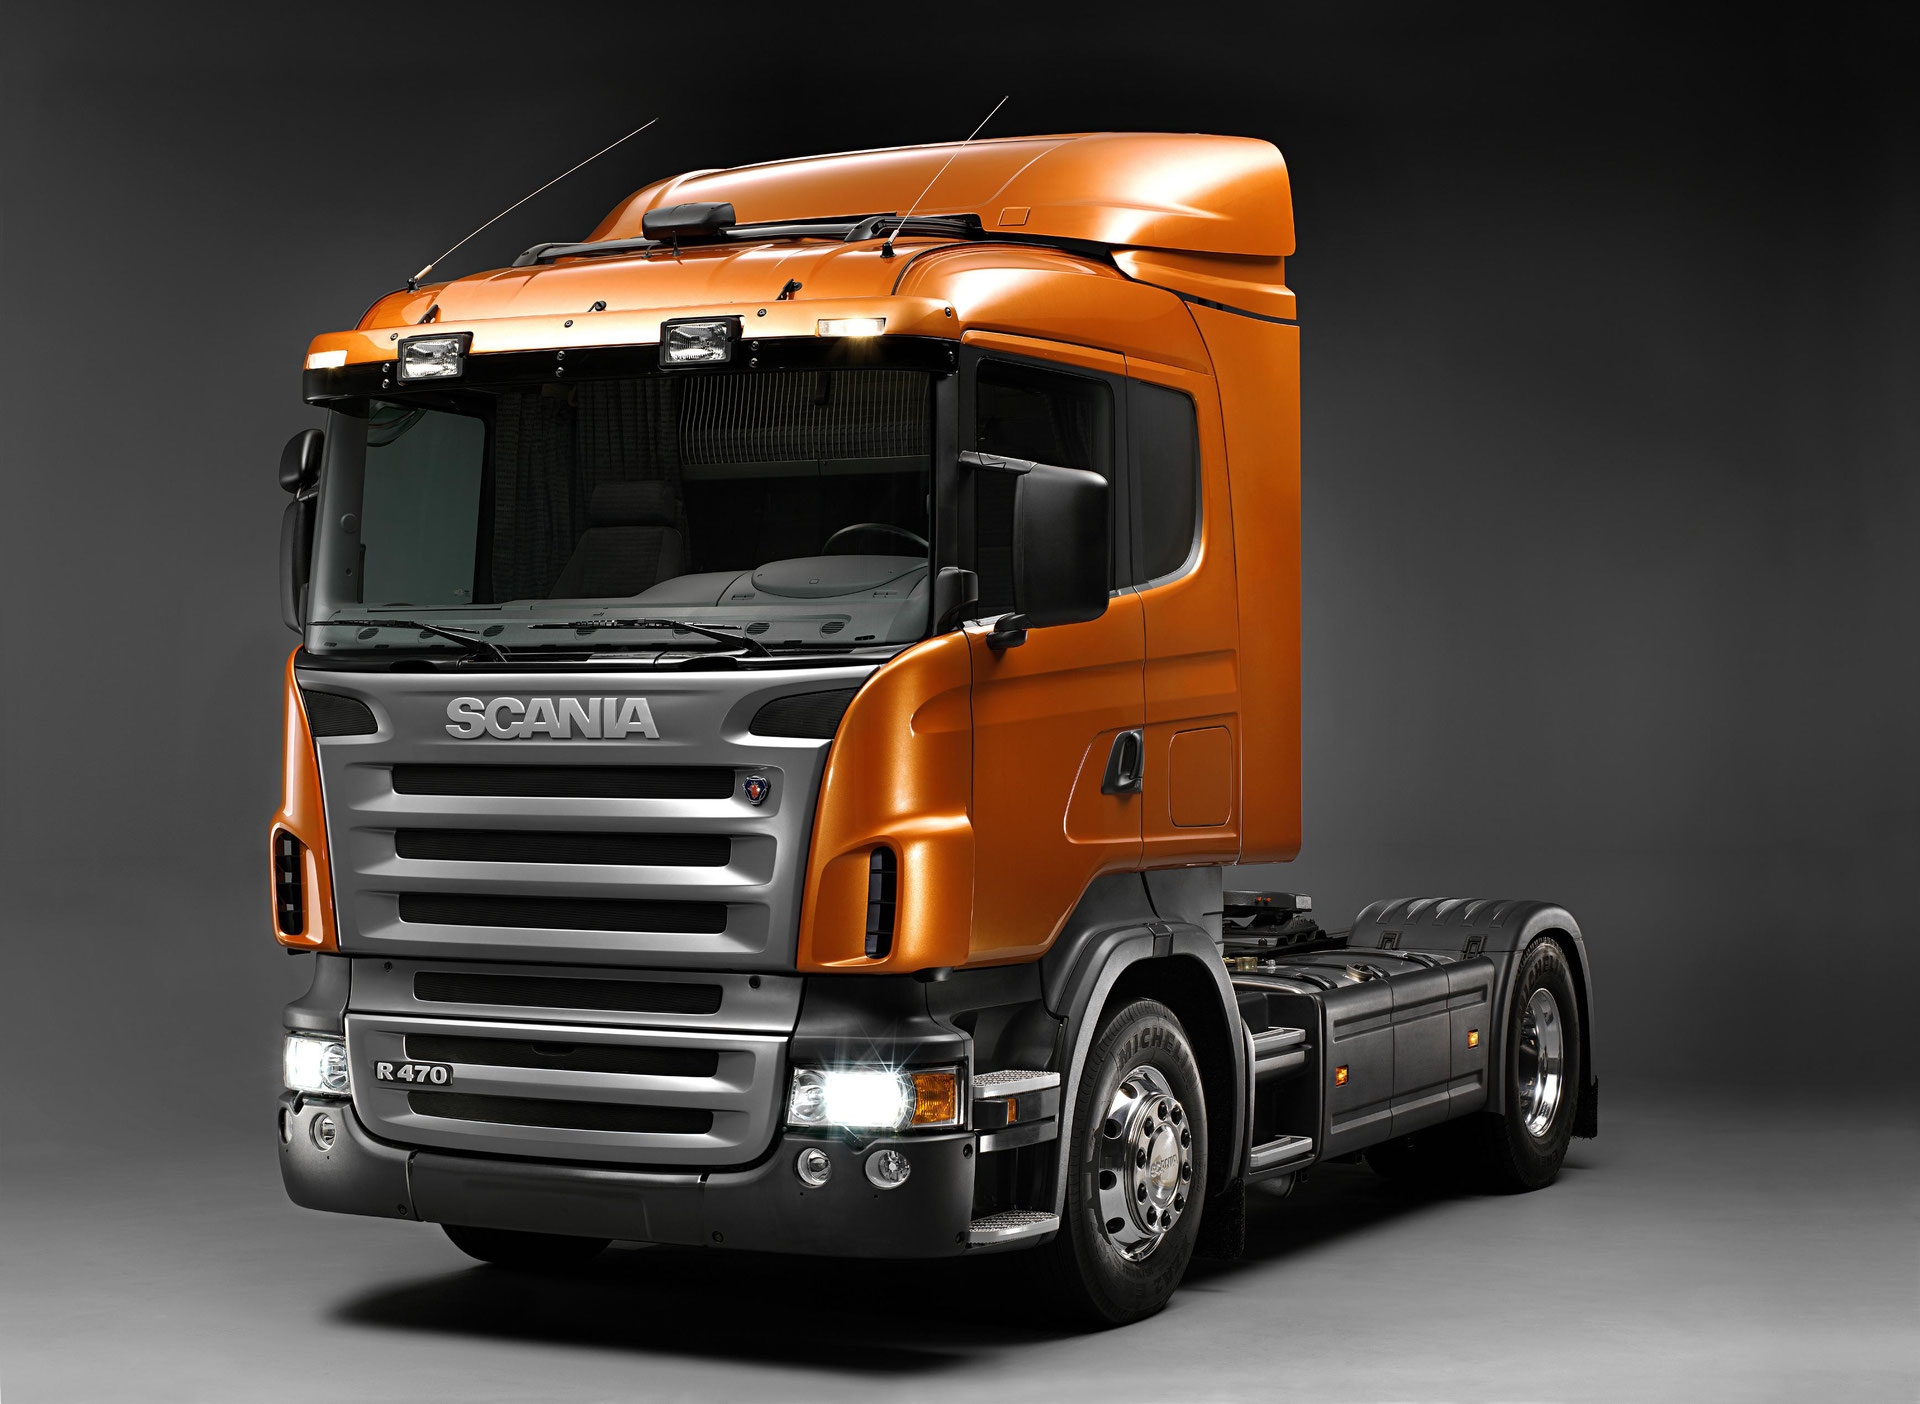 108 Scania Trucks Service Manuals Free Download Free Pdf